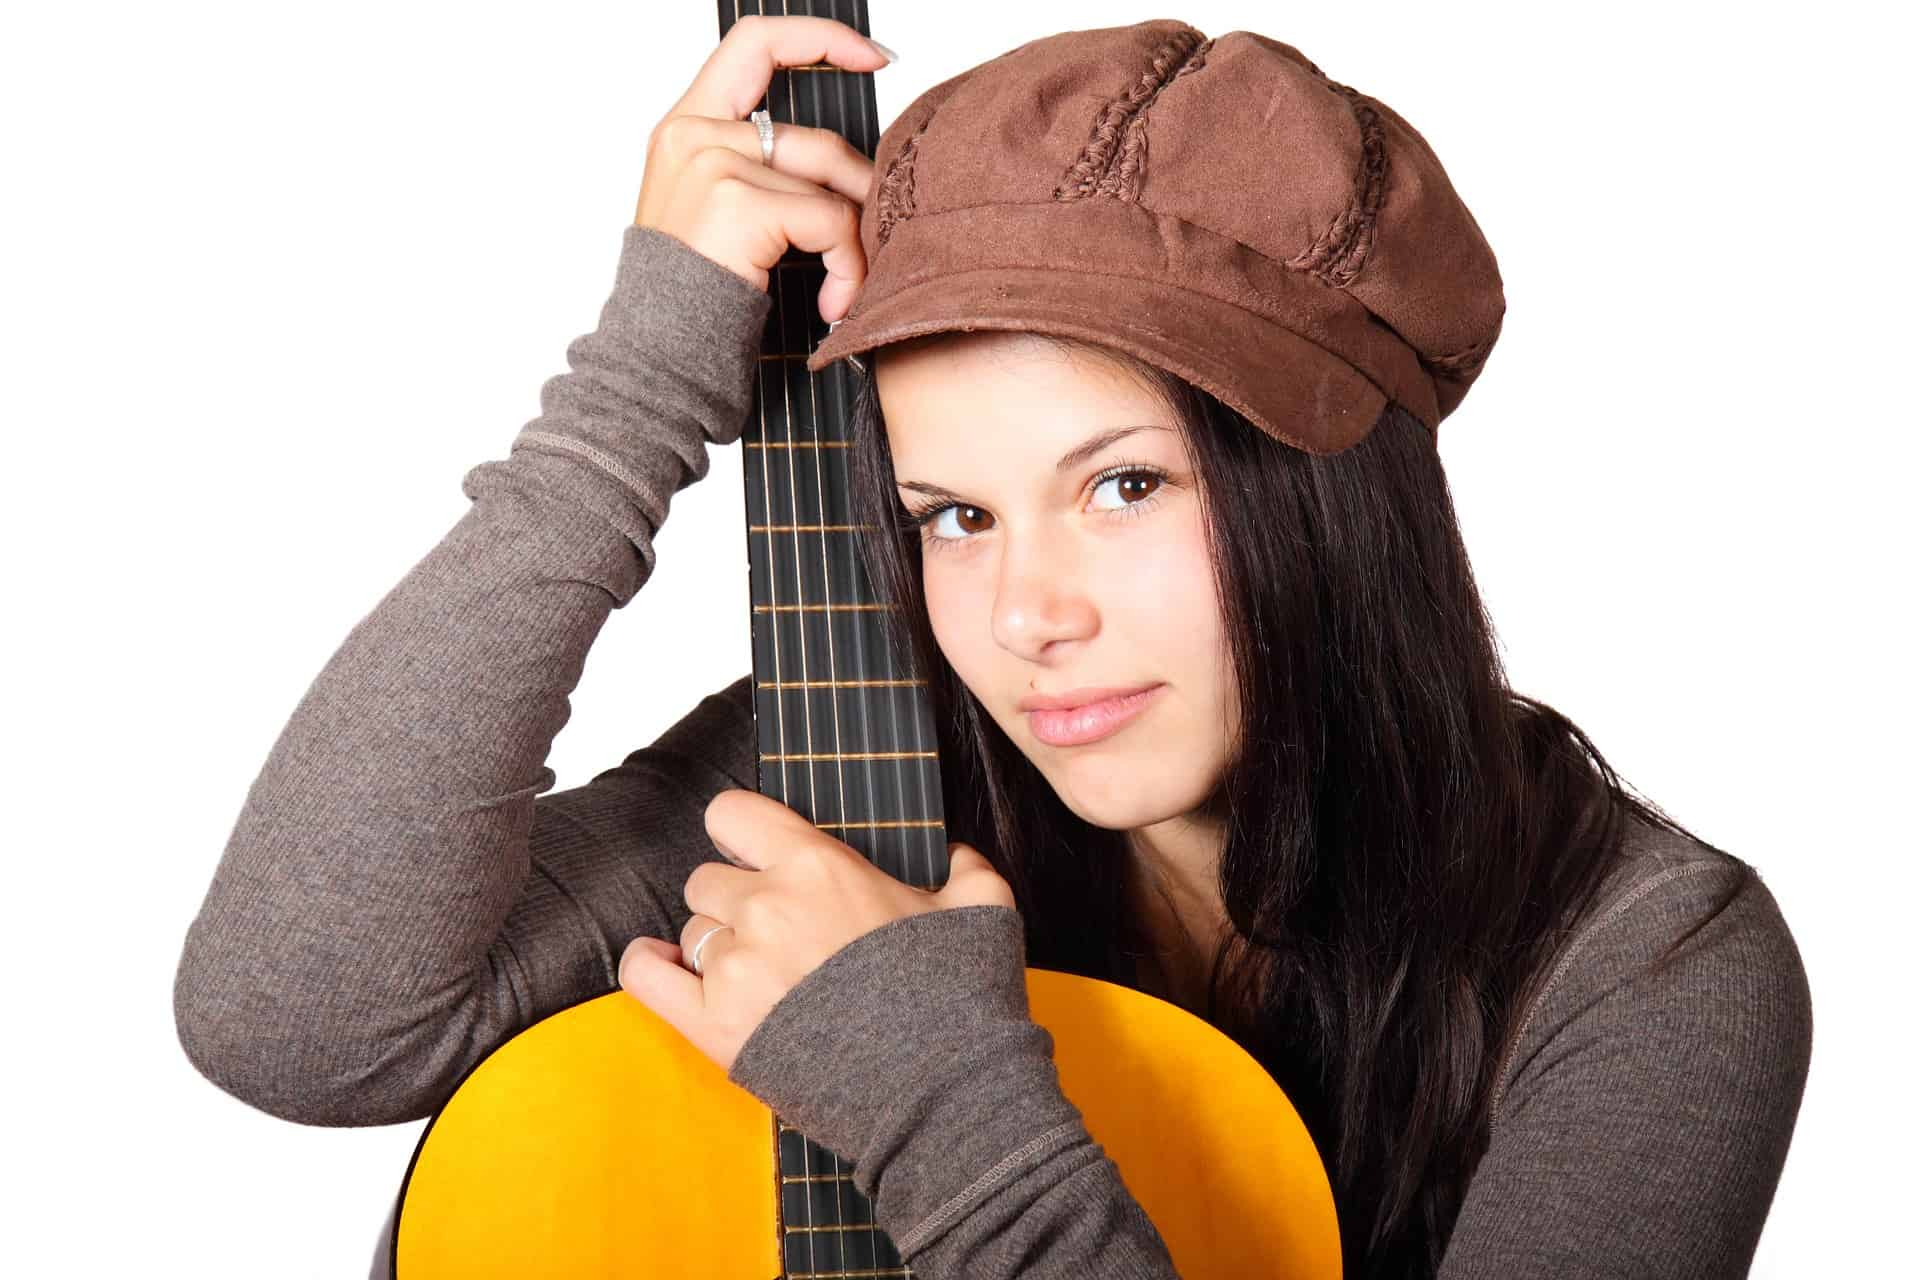 How to look after Acoustic Guitar Strings